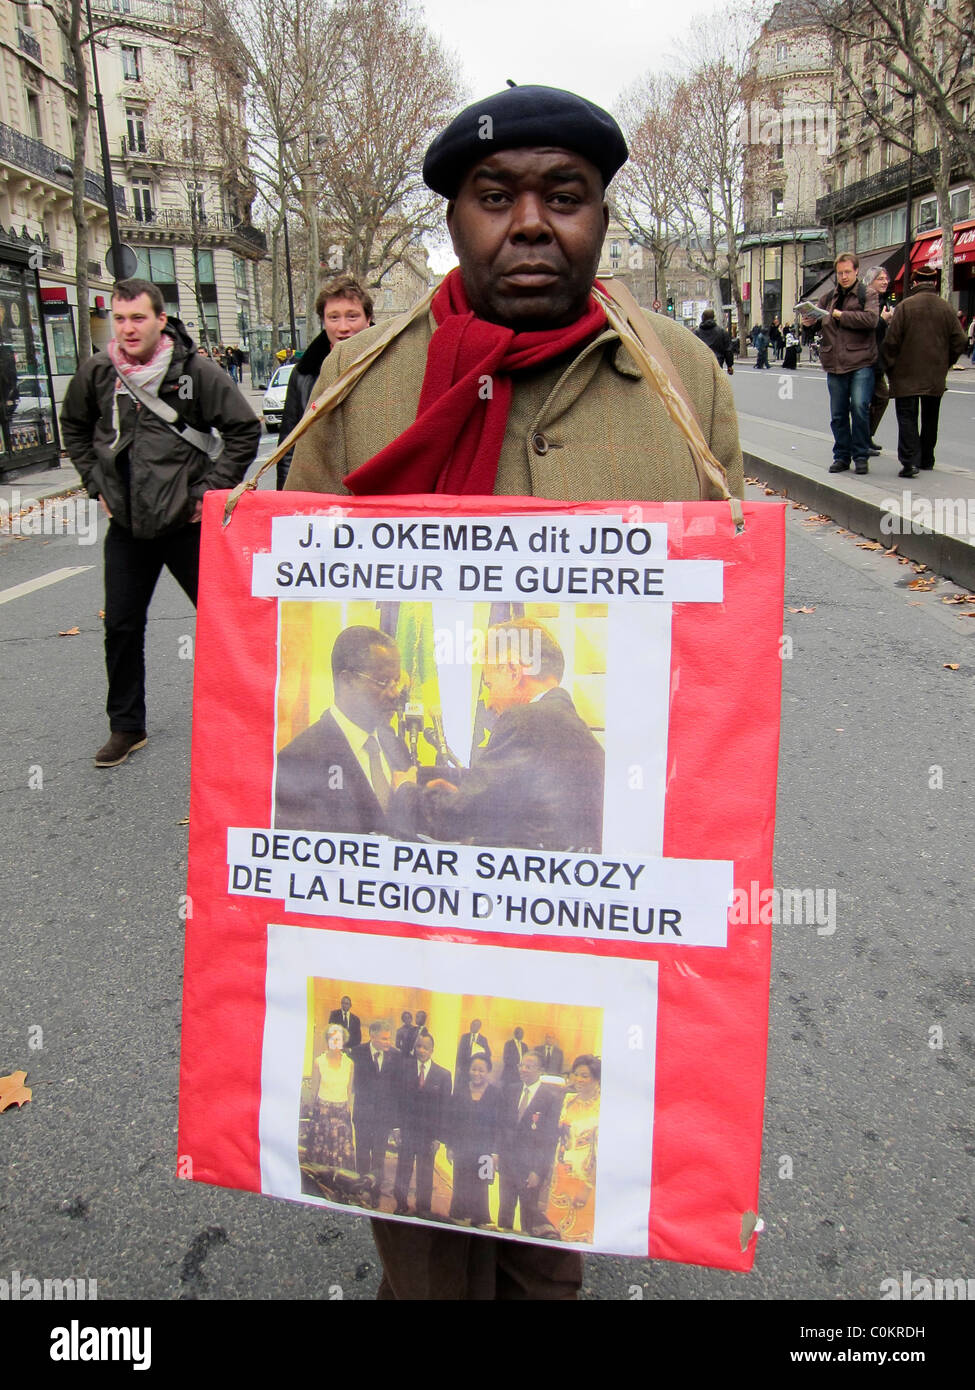 Paris, France, Congo Demonstration, Man Holding Sign in Opposition to the Congo-Brazzaville, Government - Stock Image